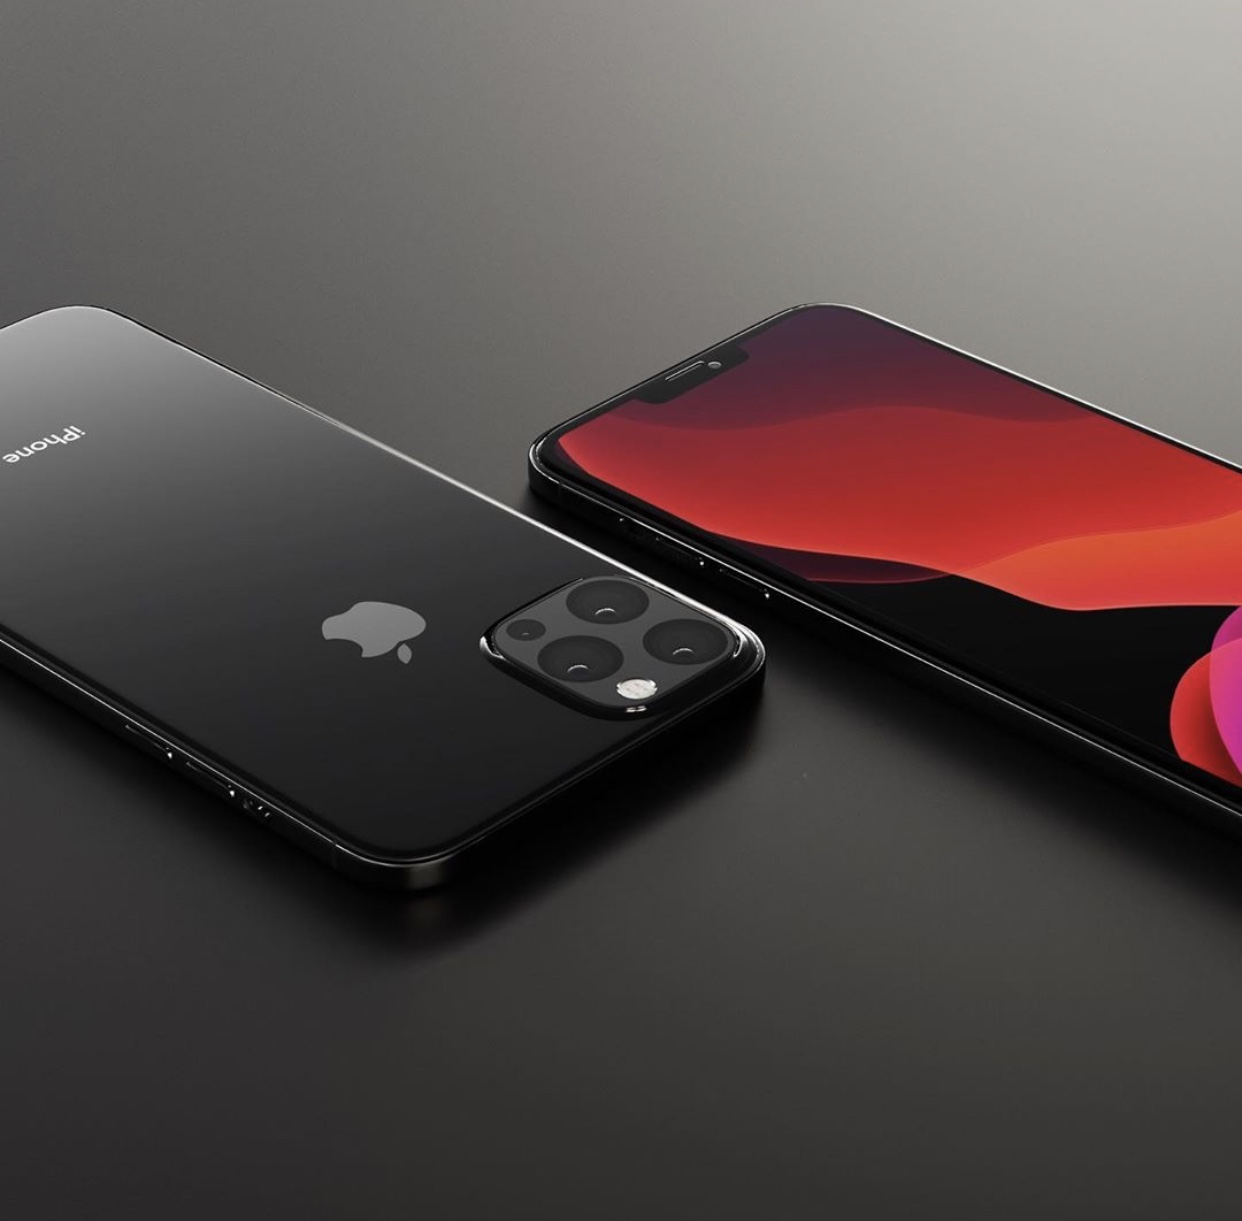 The latest on the next iPhone